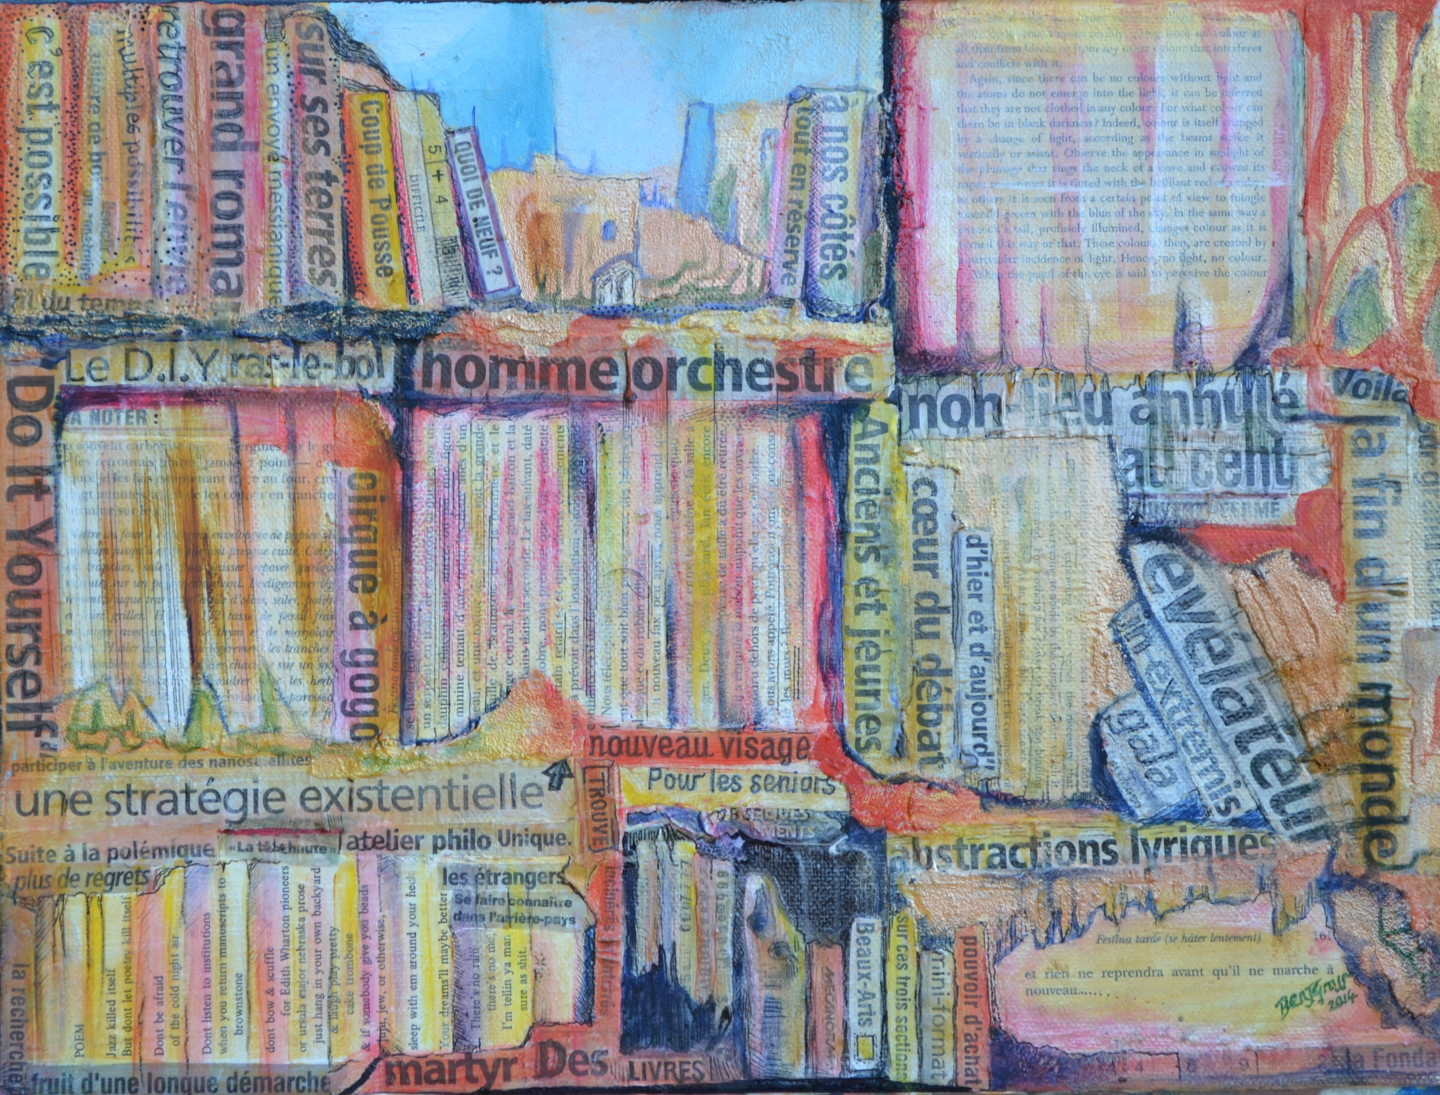 Biblio-Labyrinthe #2 (Abstractions Lyriques) Painting By Ben avec Labyrinthe Difficile